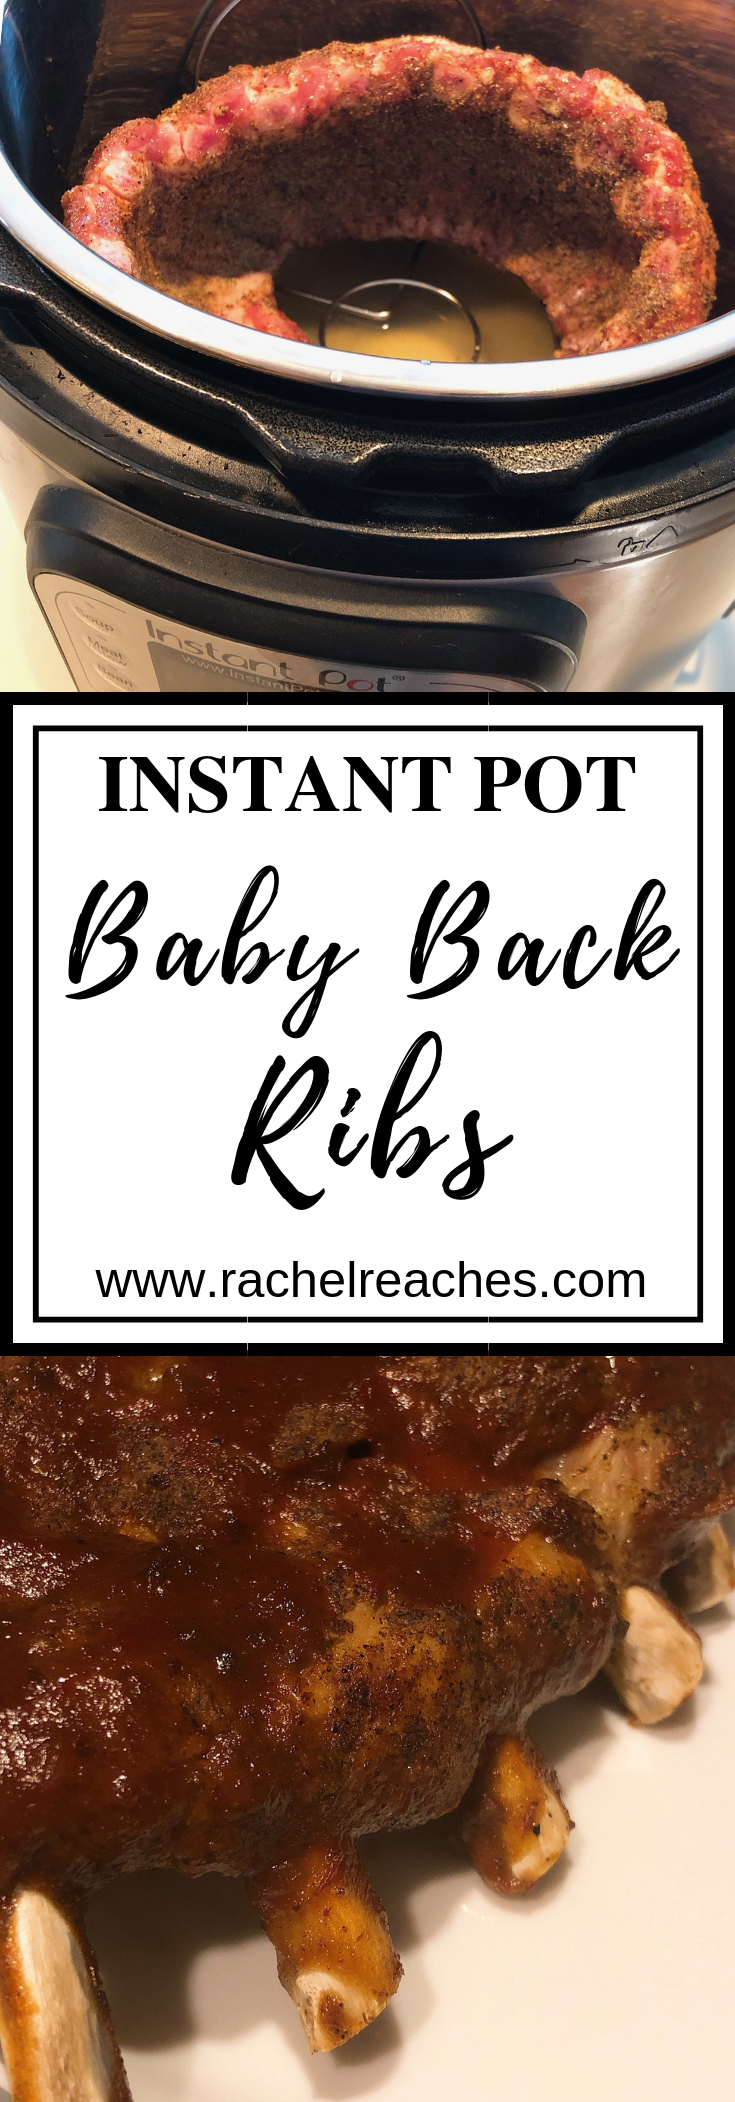 Baby Back Ribs - Healthy Eating.png